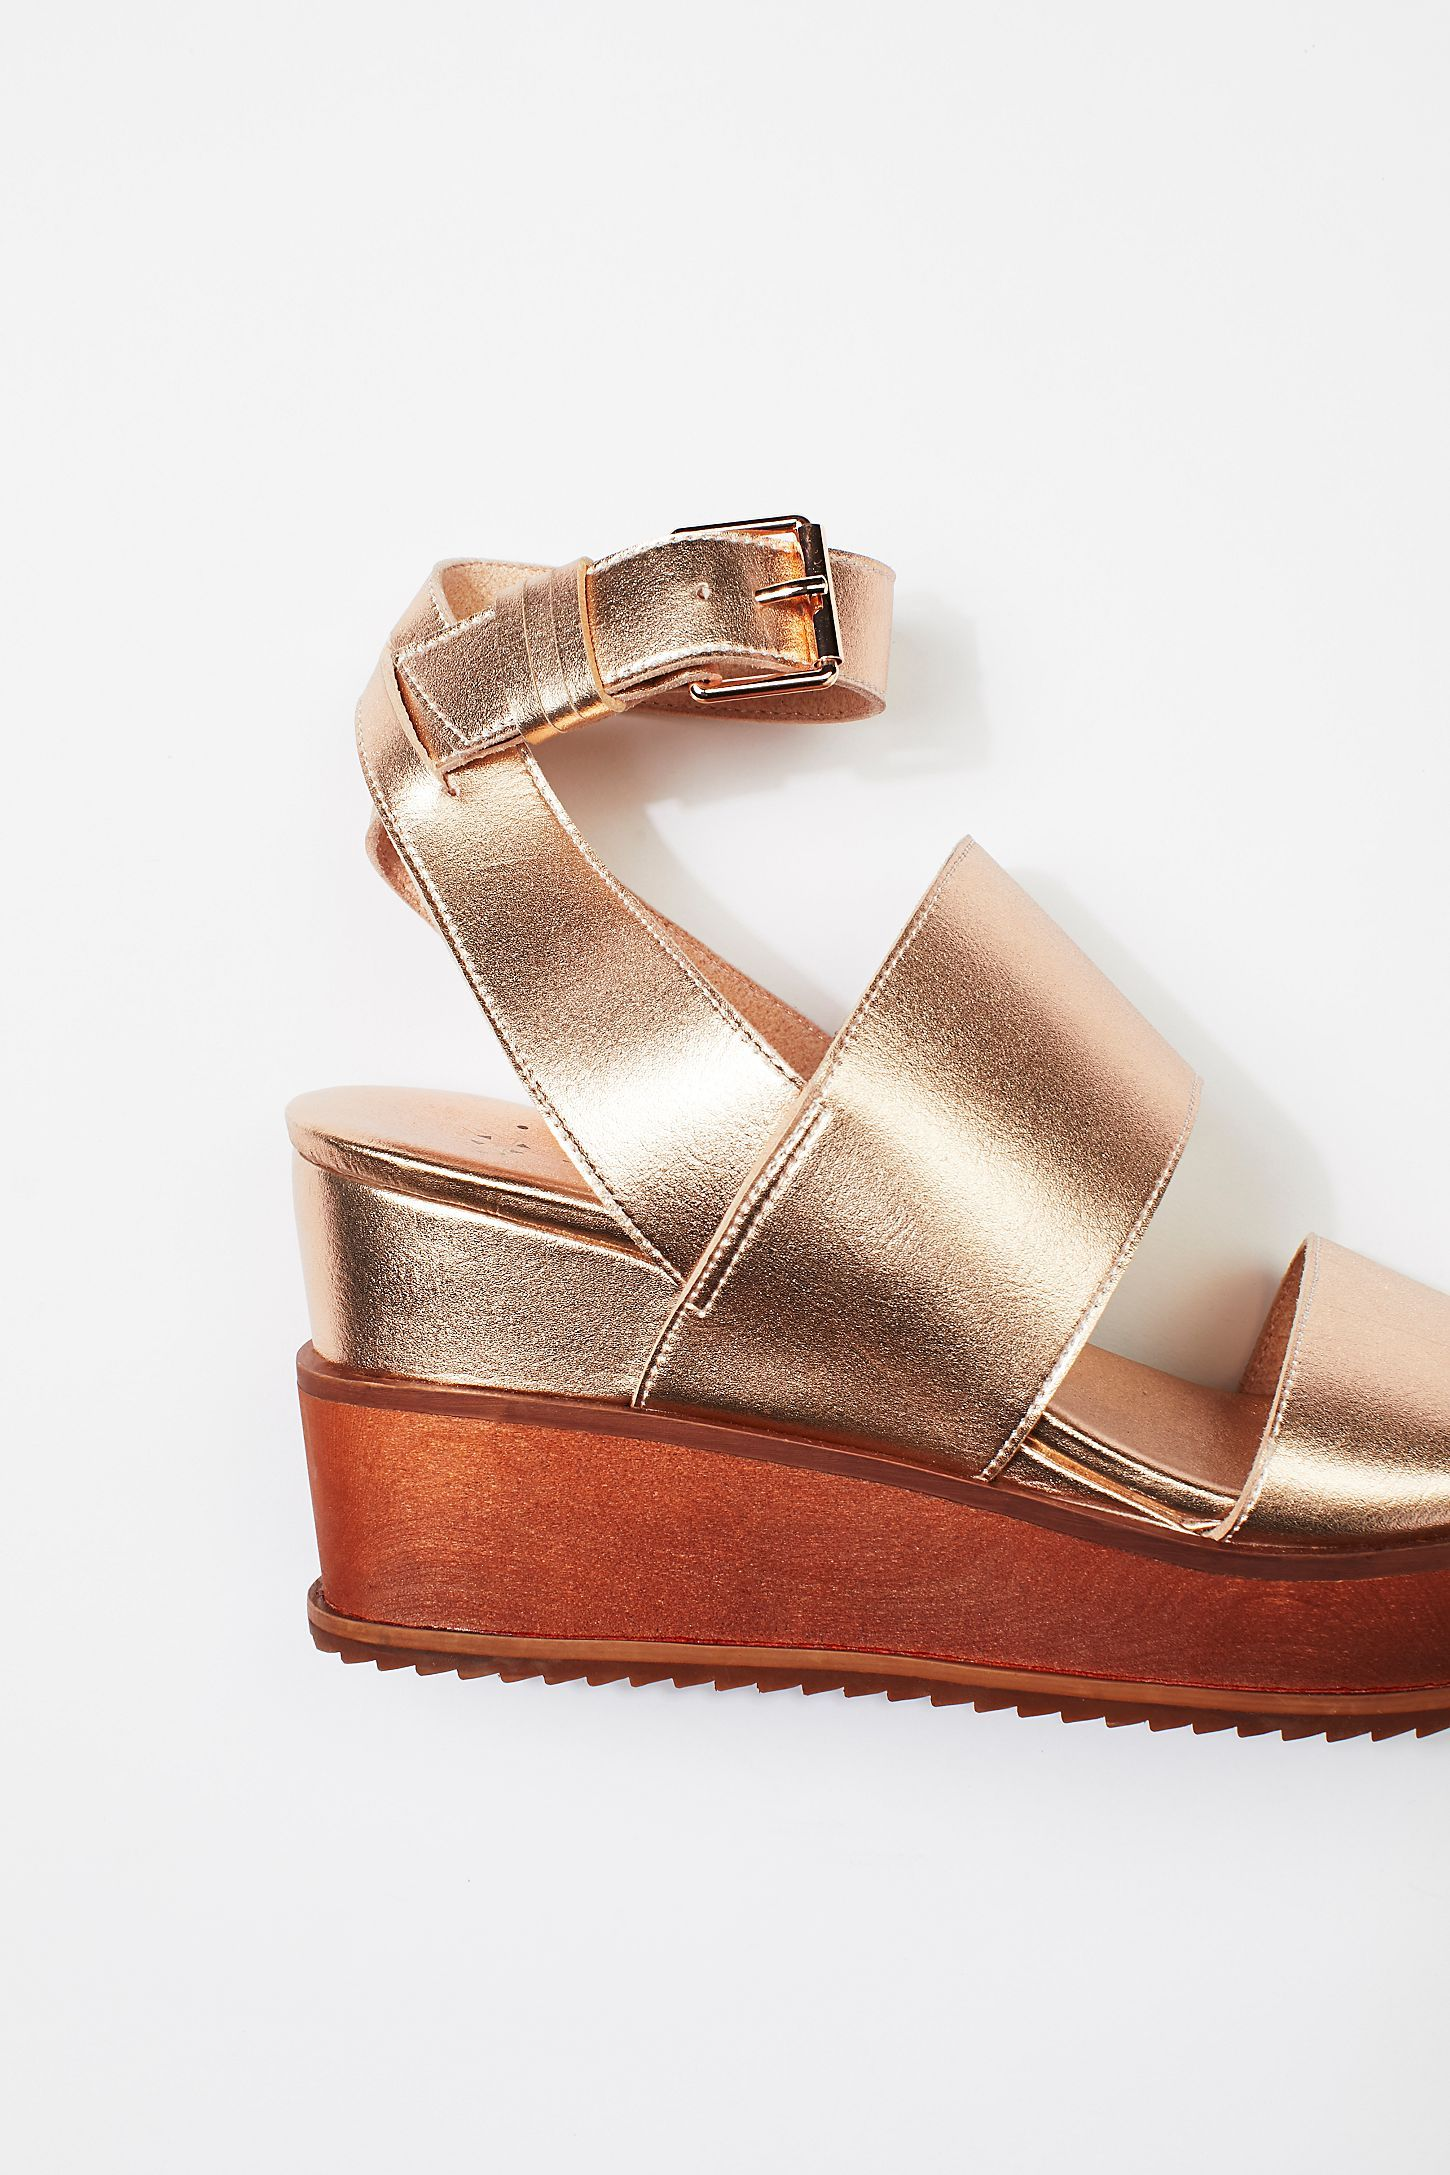 aecb30c61 Vegan Dorian Wedge   Spring/summer shoes   Wedges, Shoes, Shoes ...